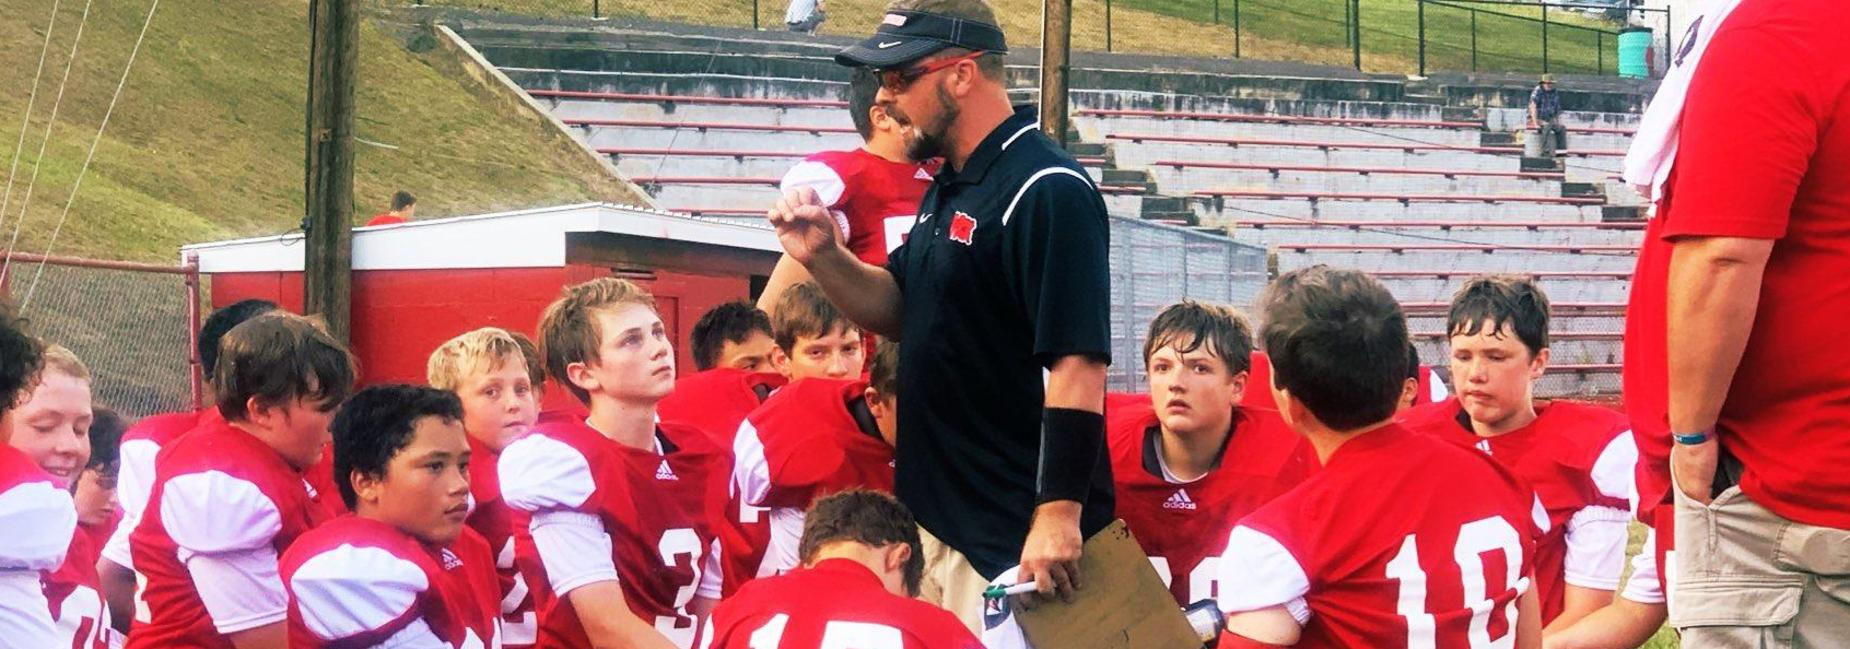 Coach Neese talking to football players during half time.